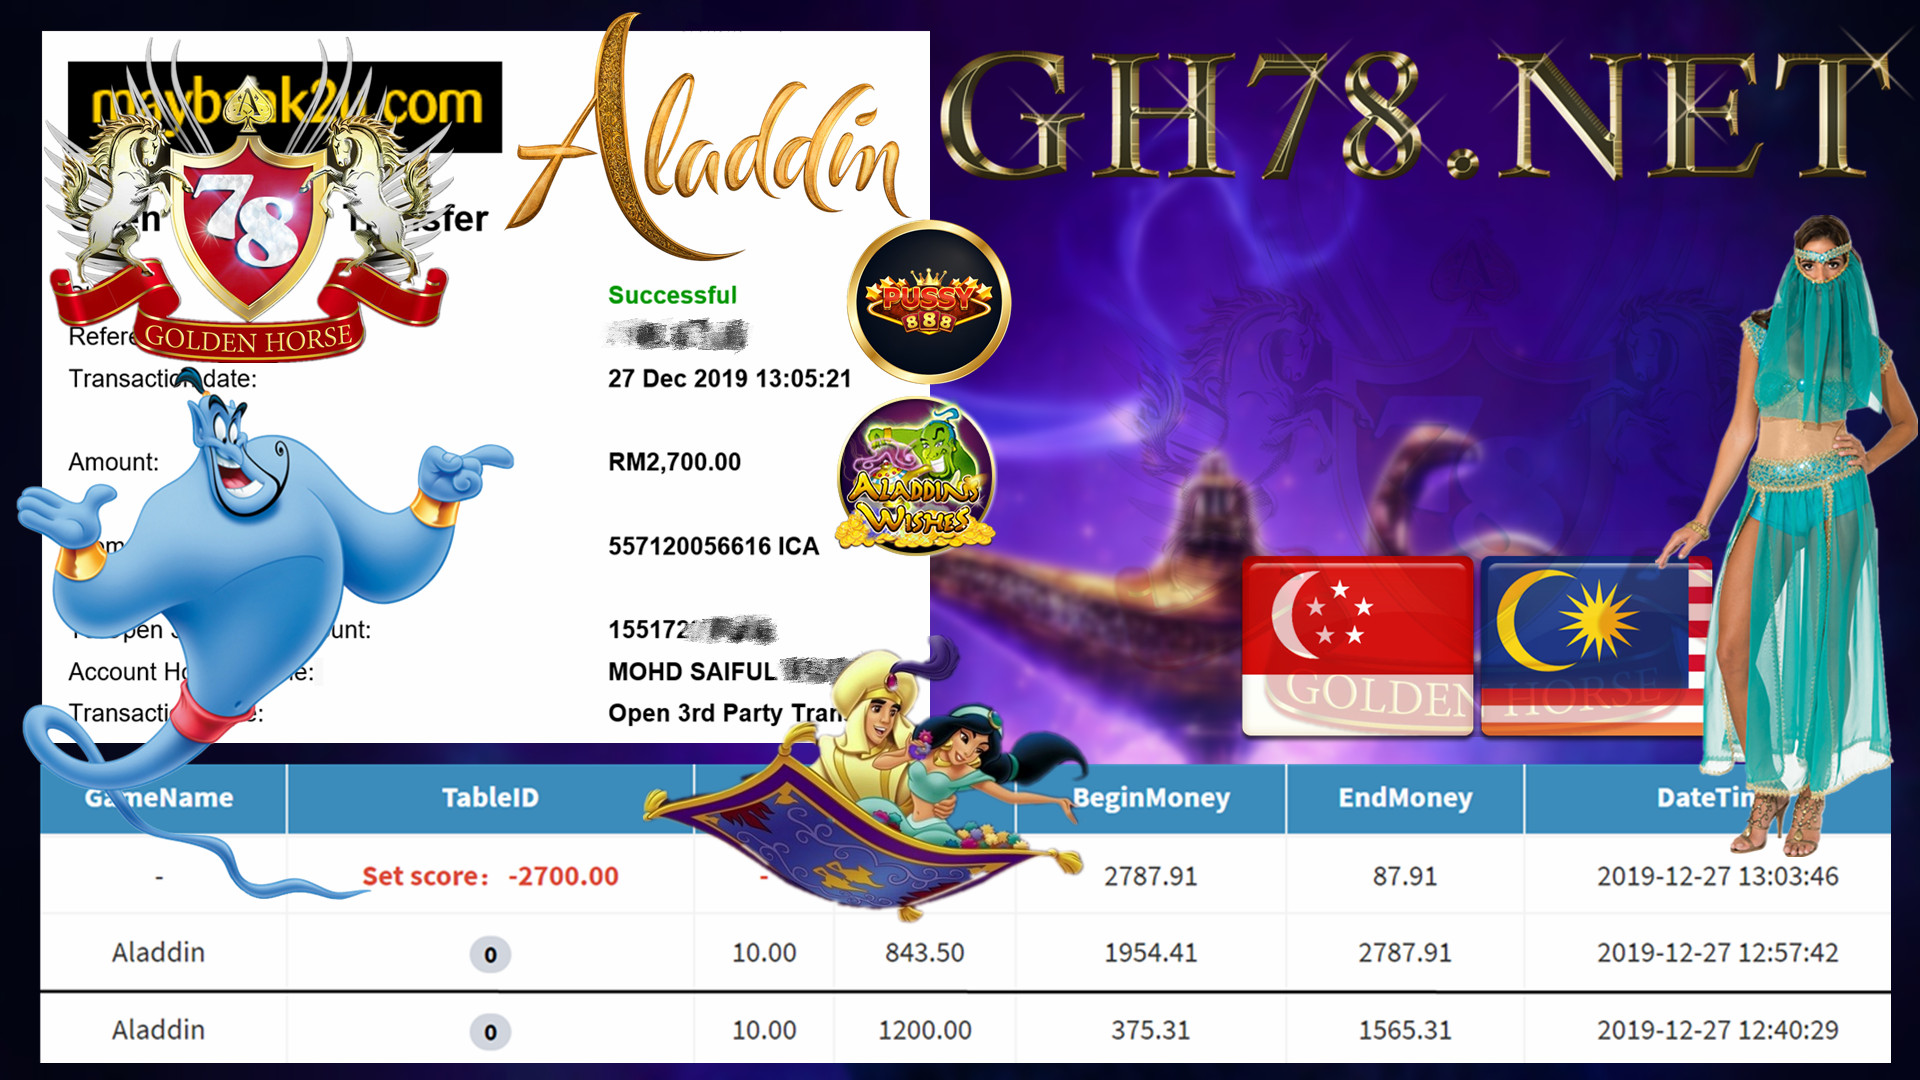 MEMBER MAIN PUSSY888 GAME ALADIN MINTA OUT RM2700!!!